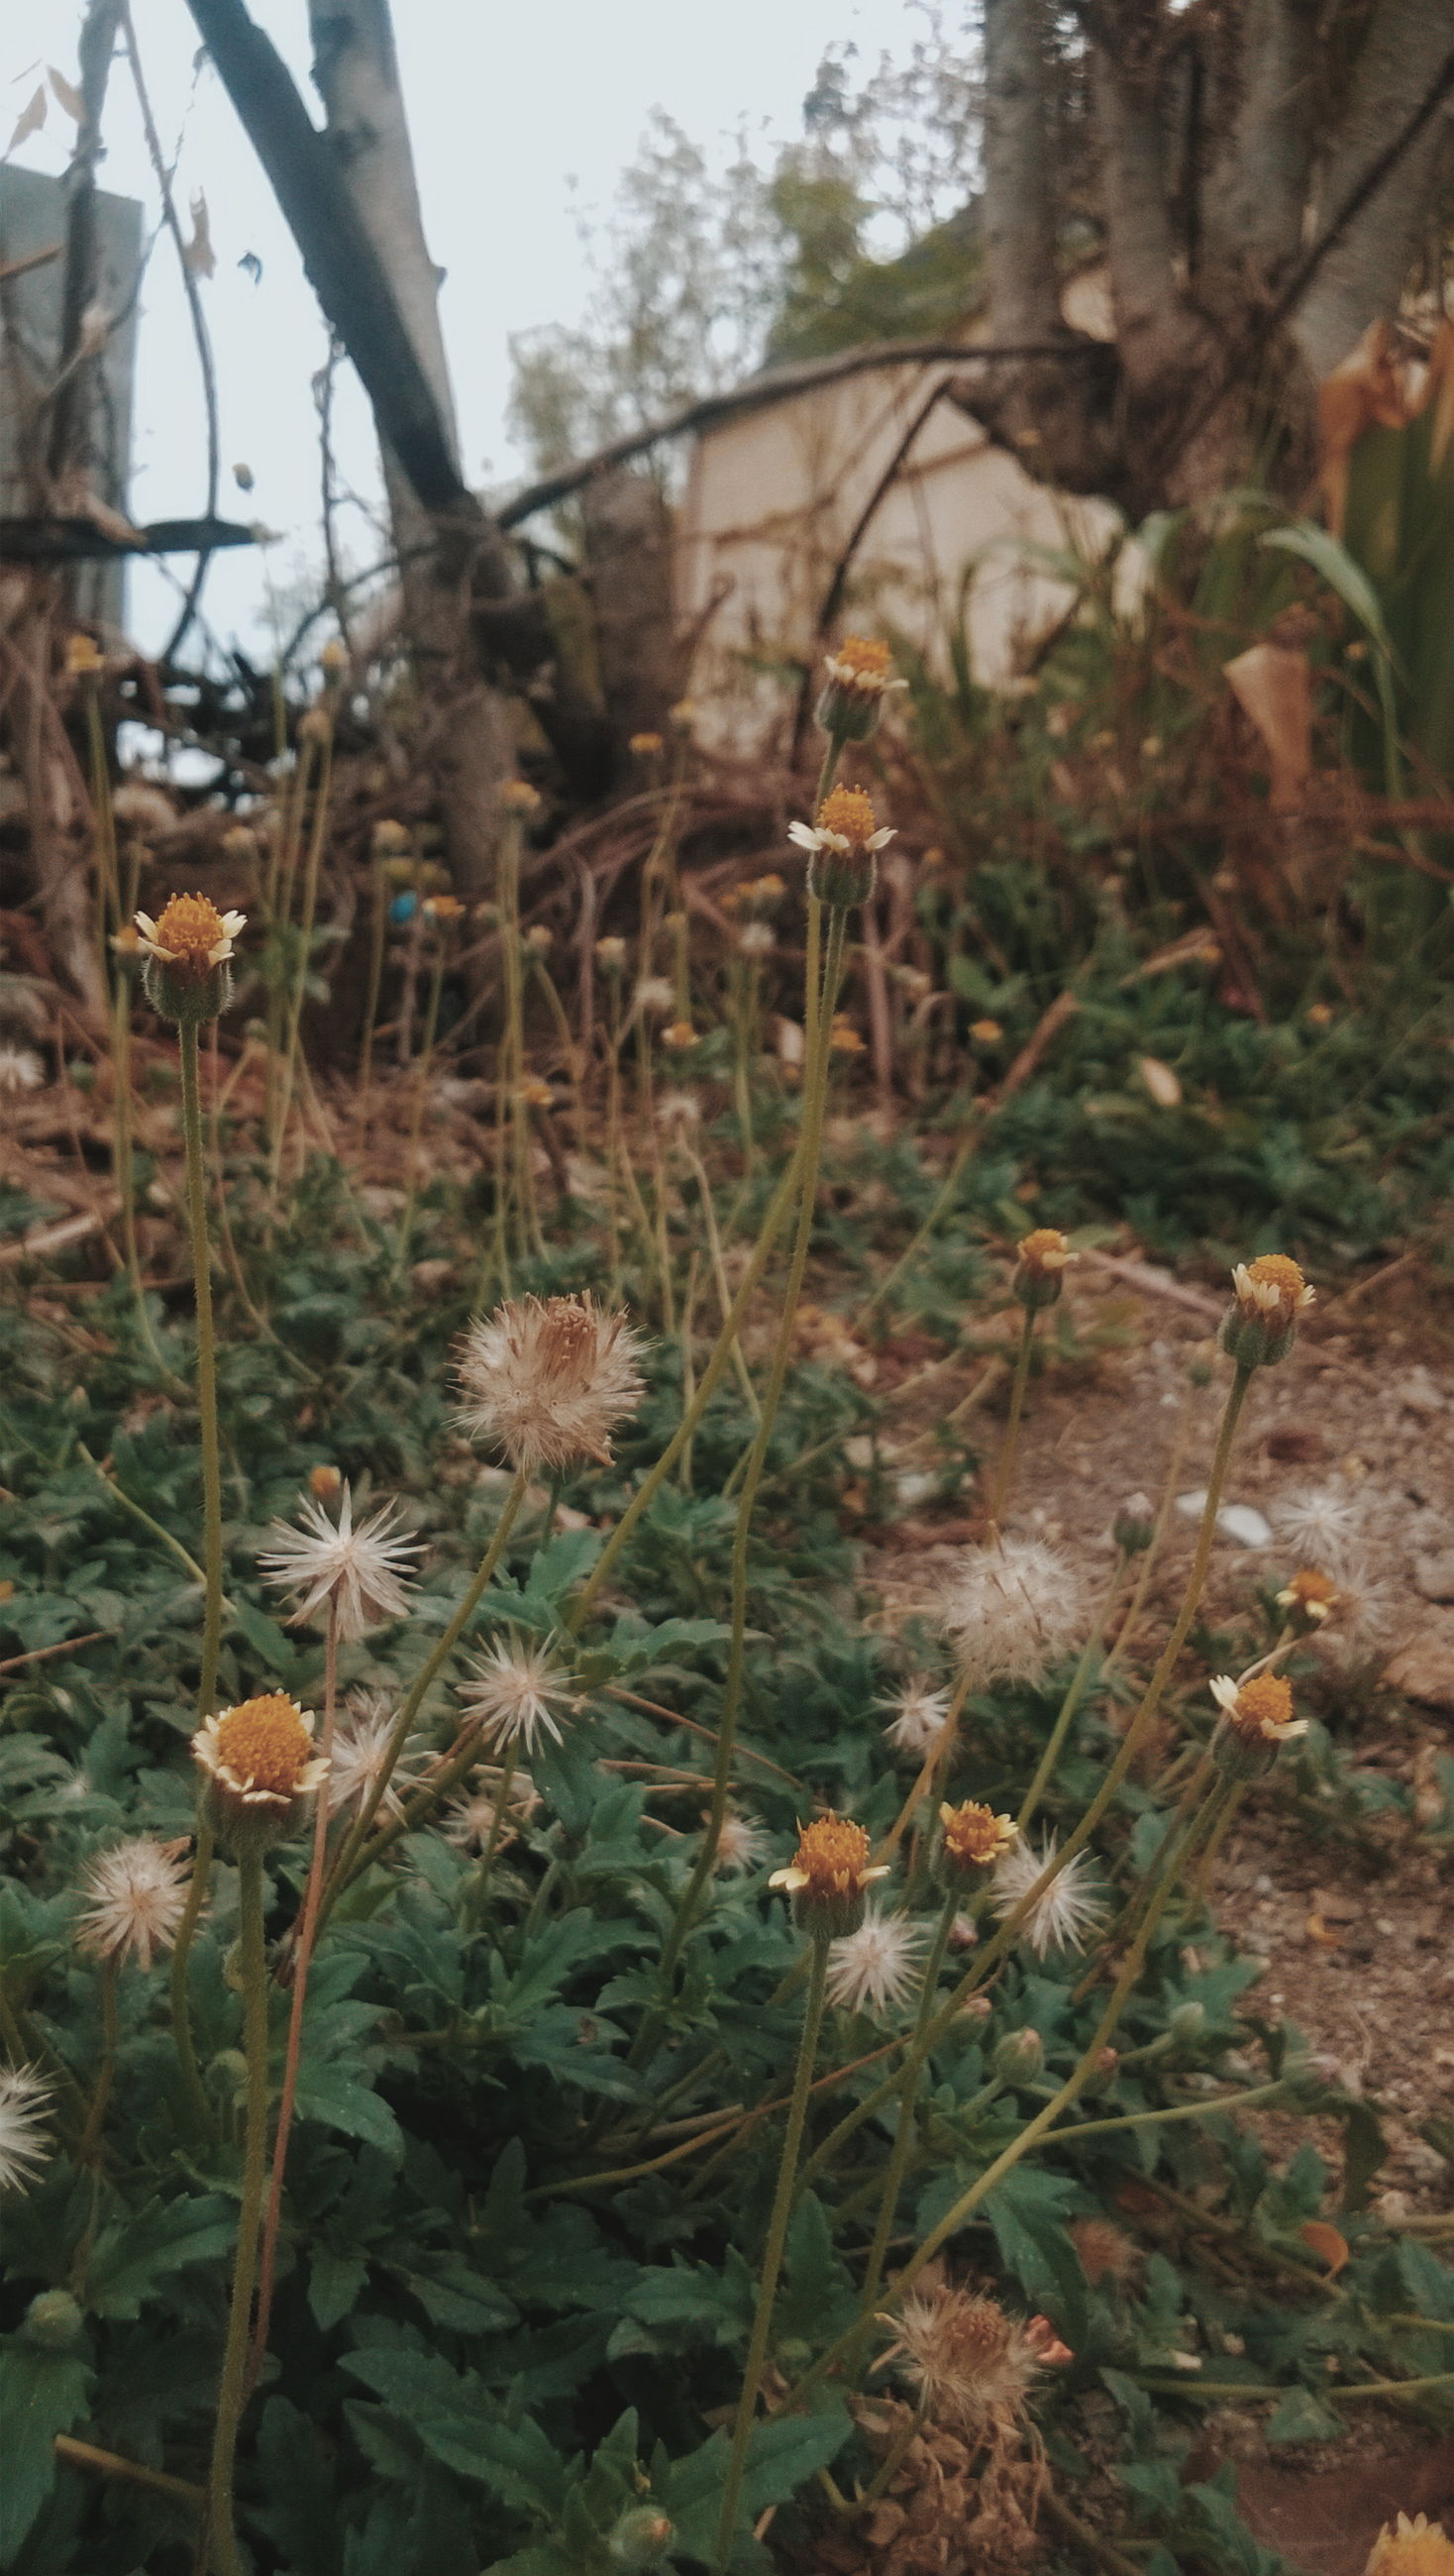 growth, plant, nature, flower, freshness, stem, leaf, field, beauty in nature, forest, fragility, growing, tranquility, day, close-up, uncultivated, outdoors, no people, grass, botany